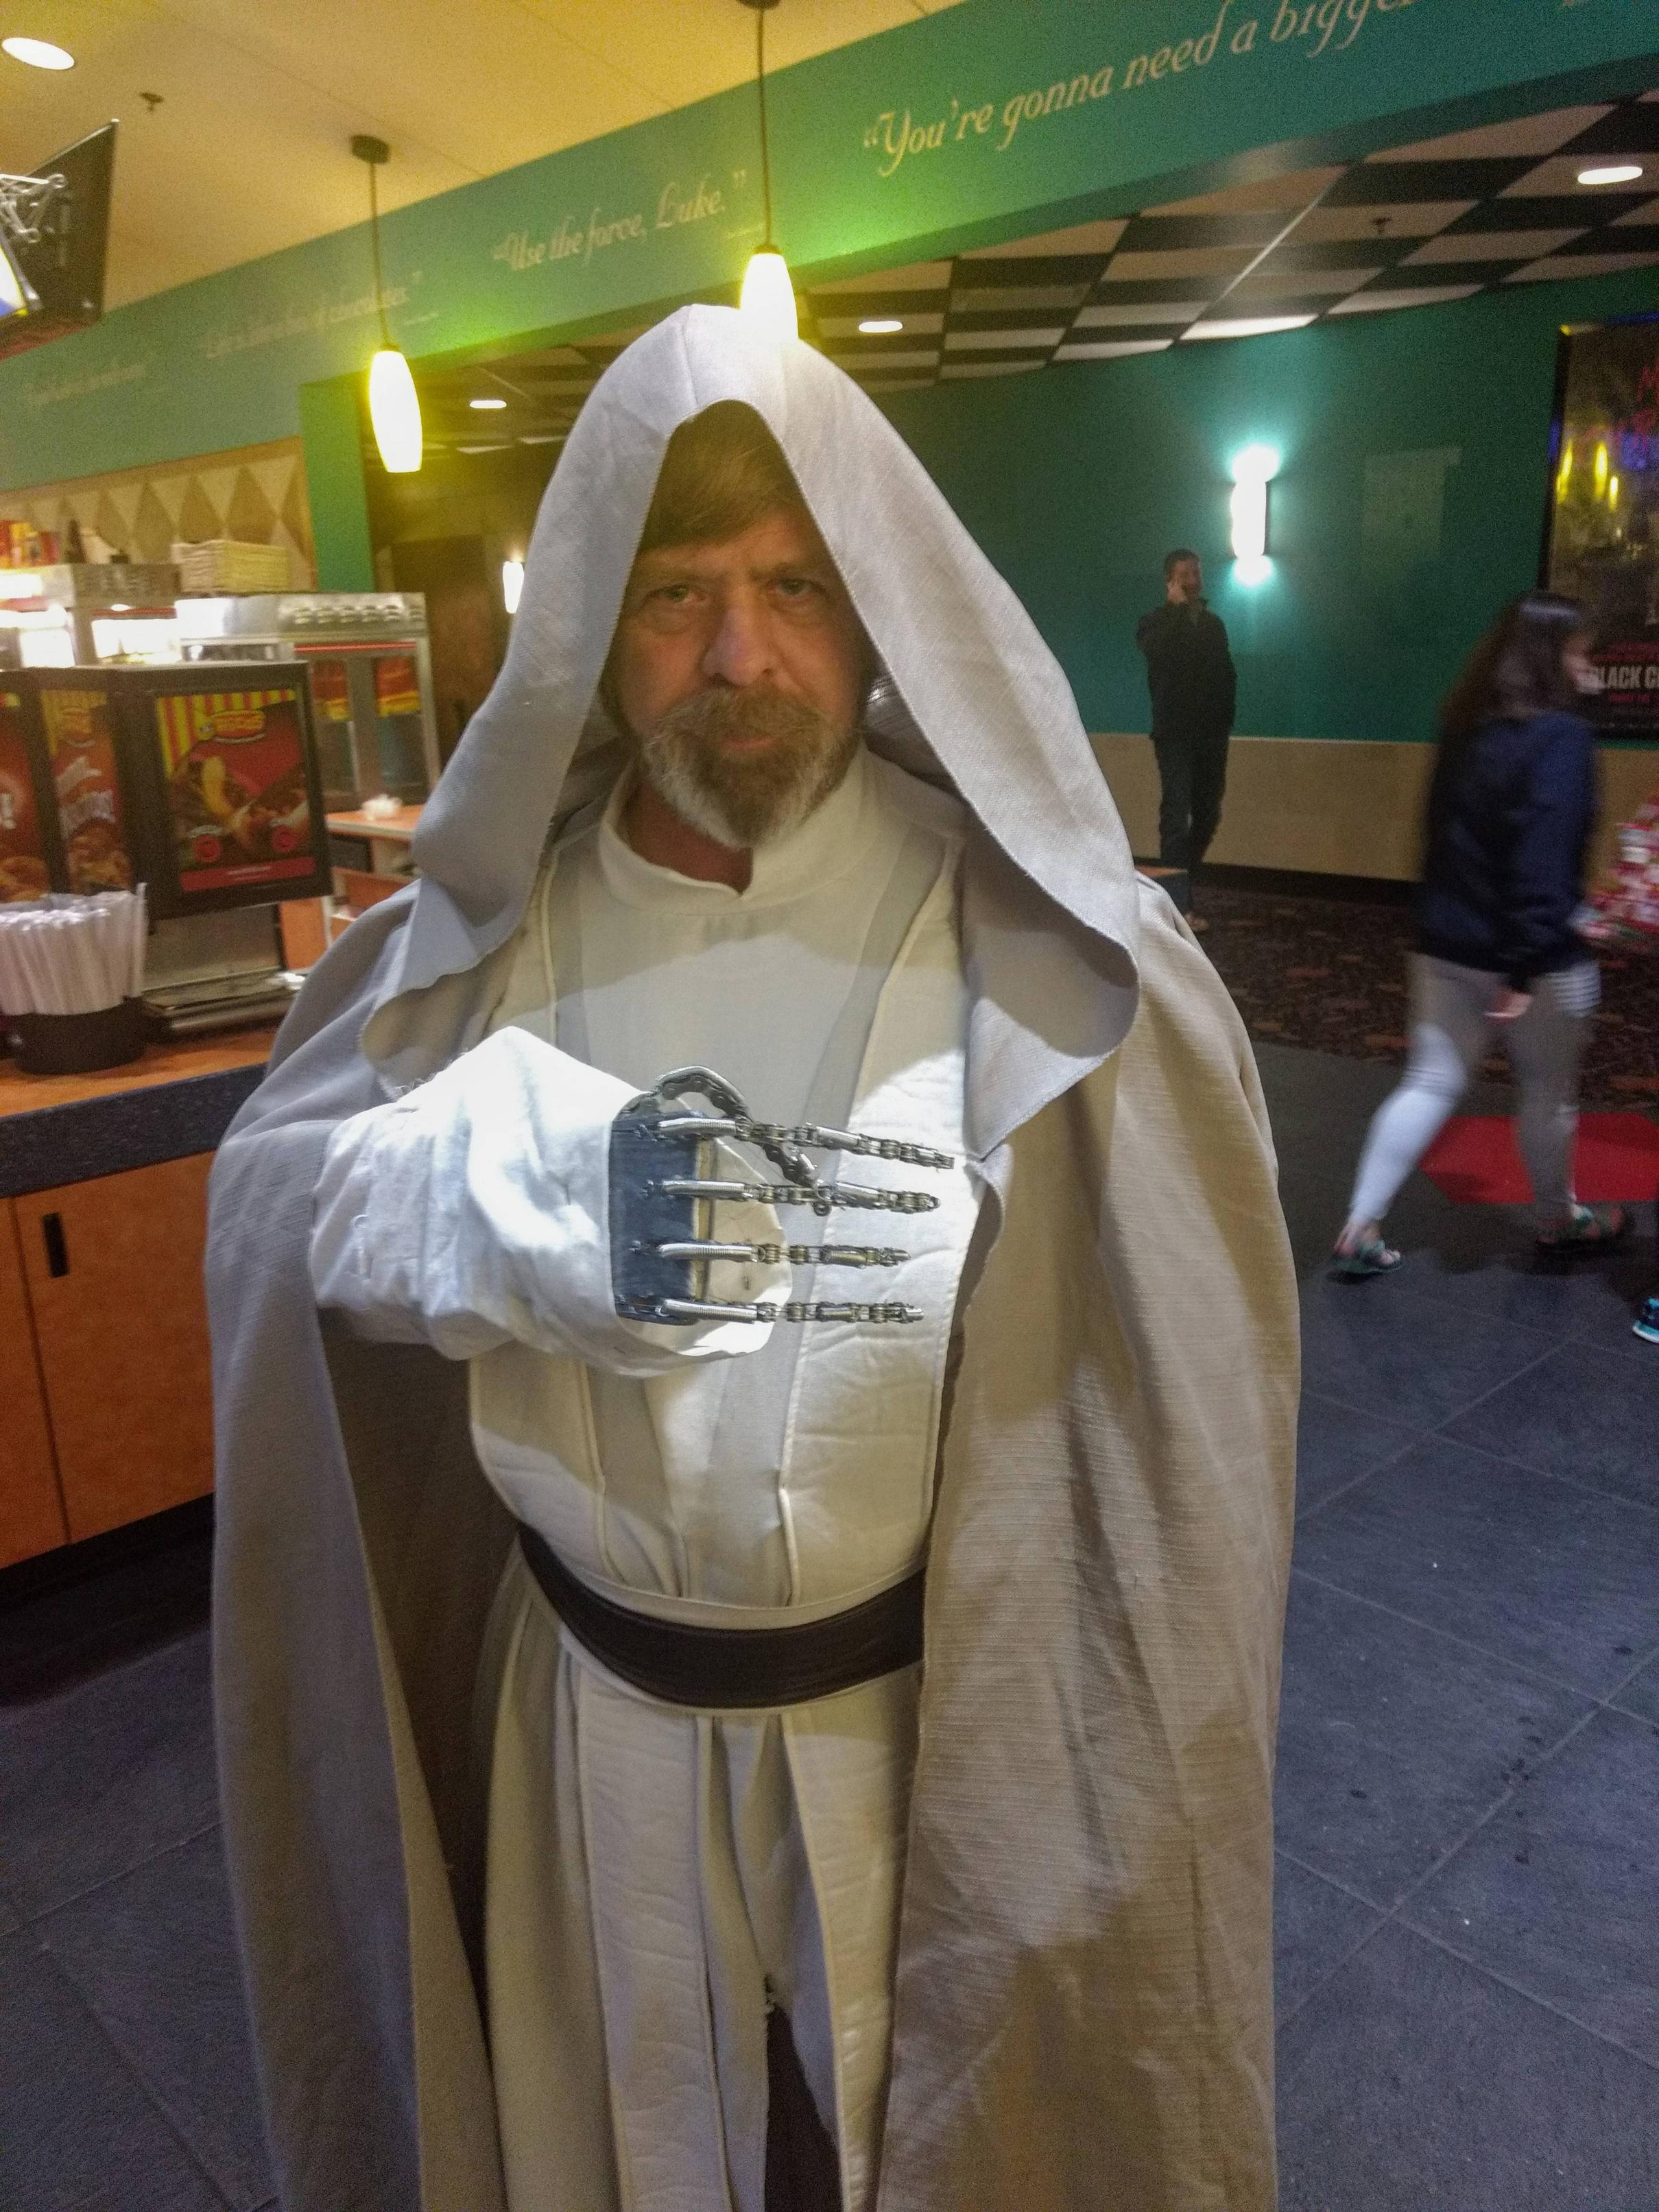 Mark Hamill and my dad look a lot alike. He came in costume to see the movie tonight. This time with a metal hand!